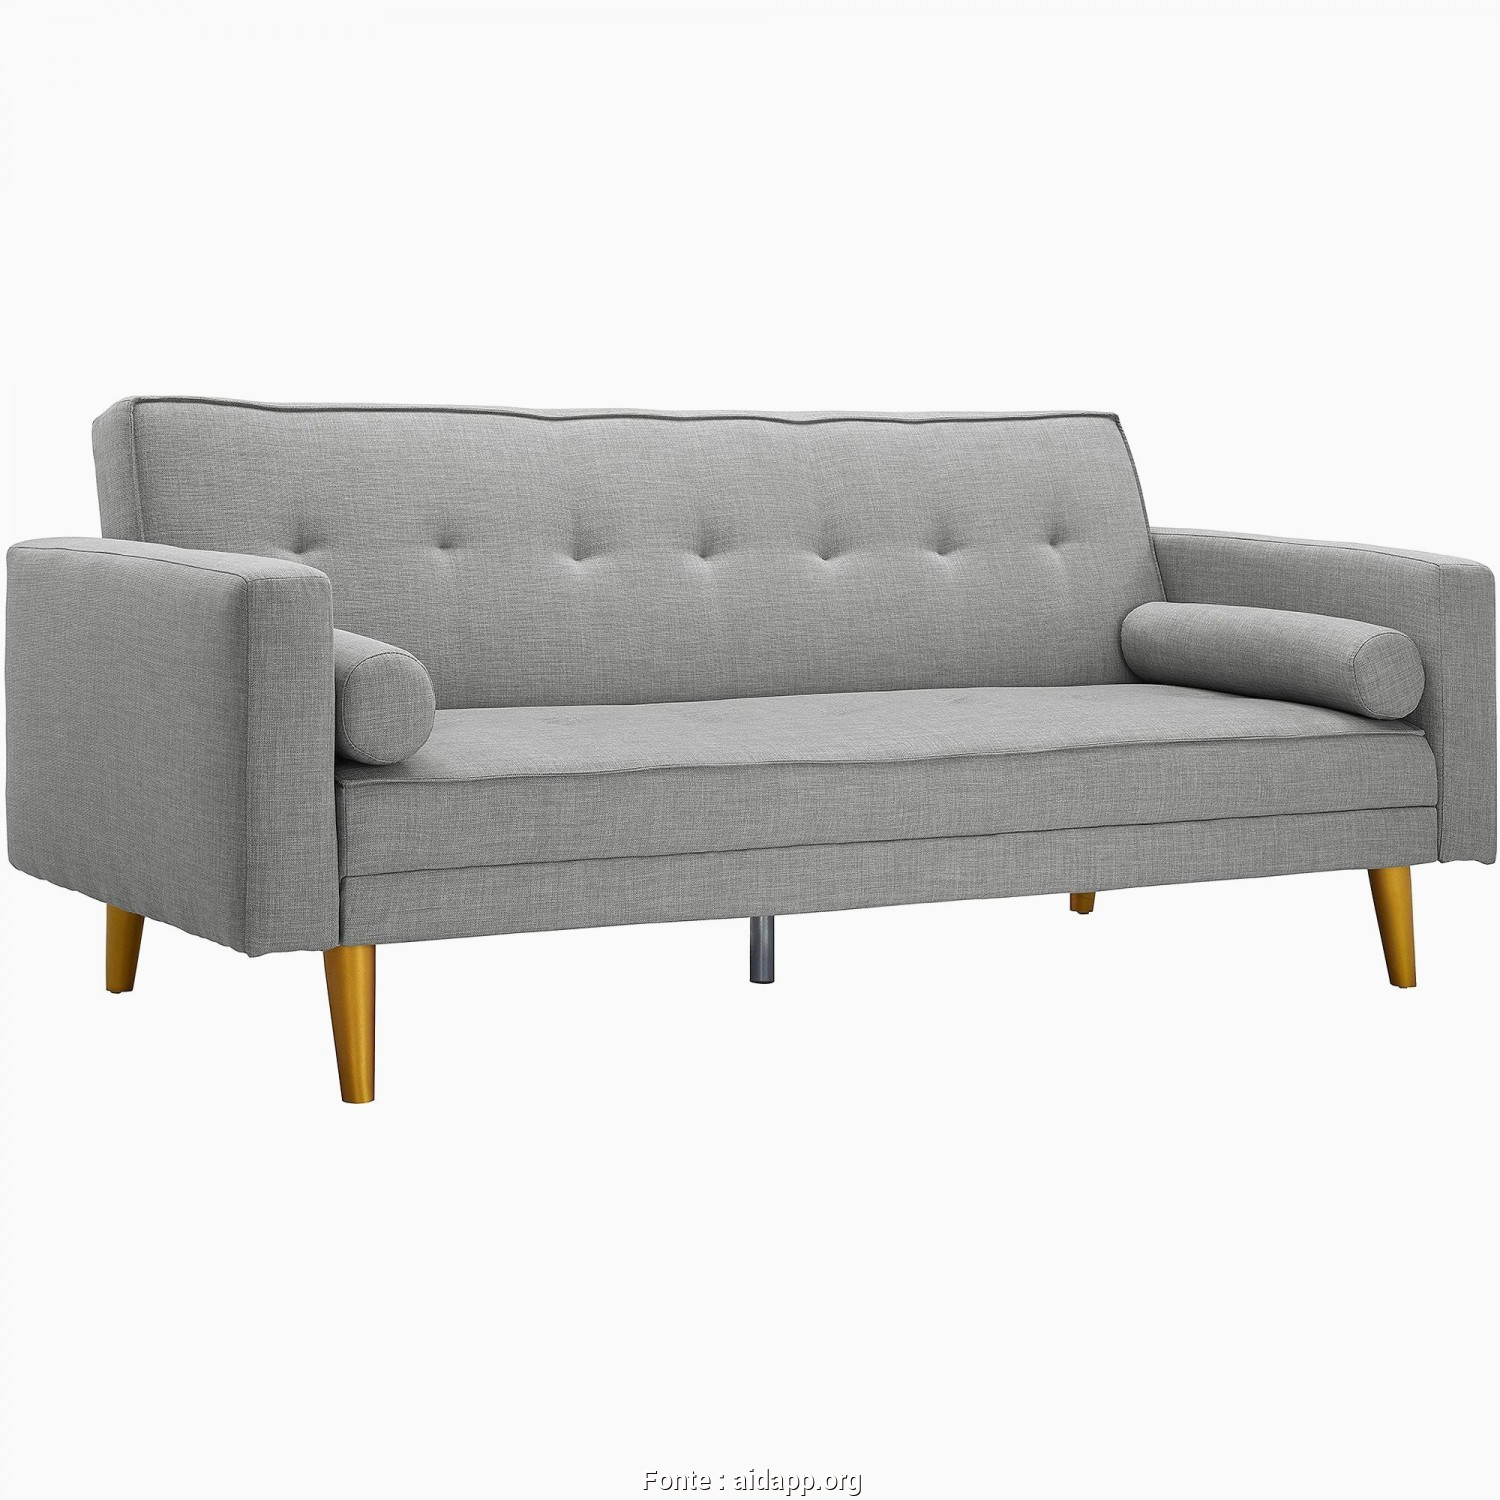 Ikea Slaapbank Beddinge Hoes, Bellissima Ikea Kivik Hoes Fantastisch 50 Beautiful Ikea Solsta Sleeper Sofa Graphics 50 S